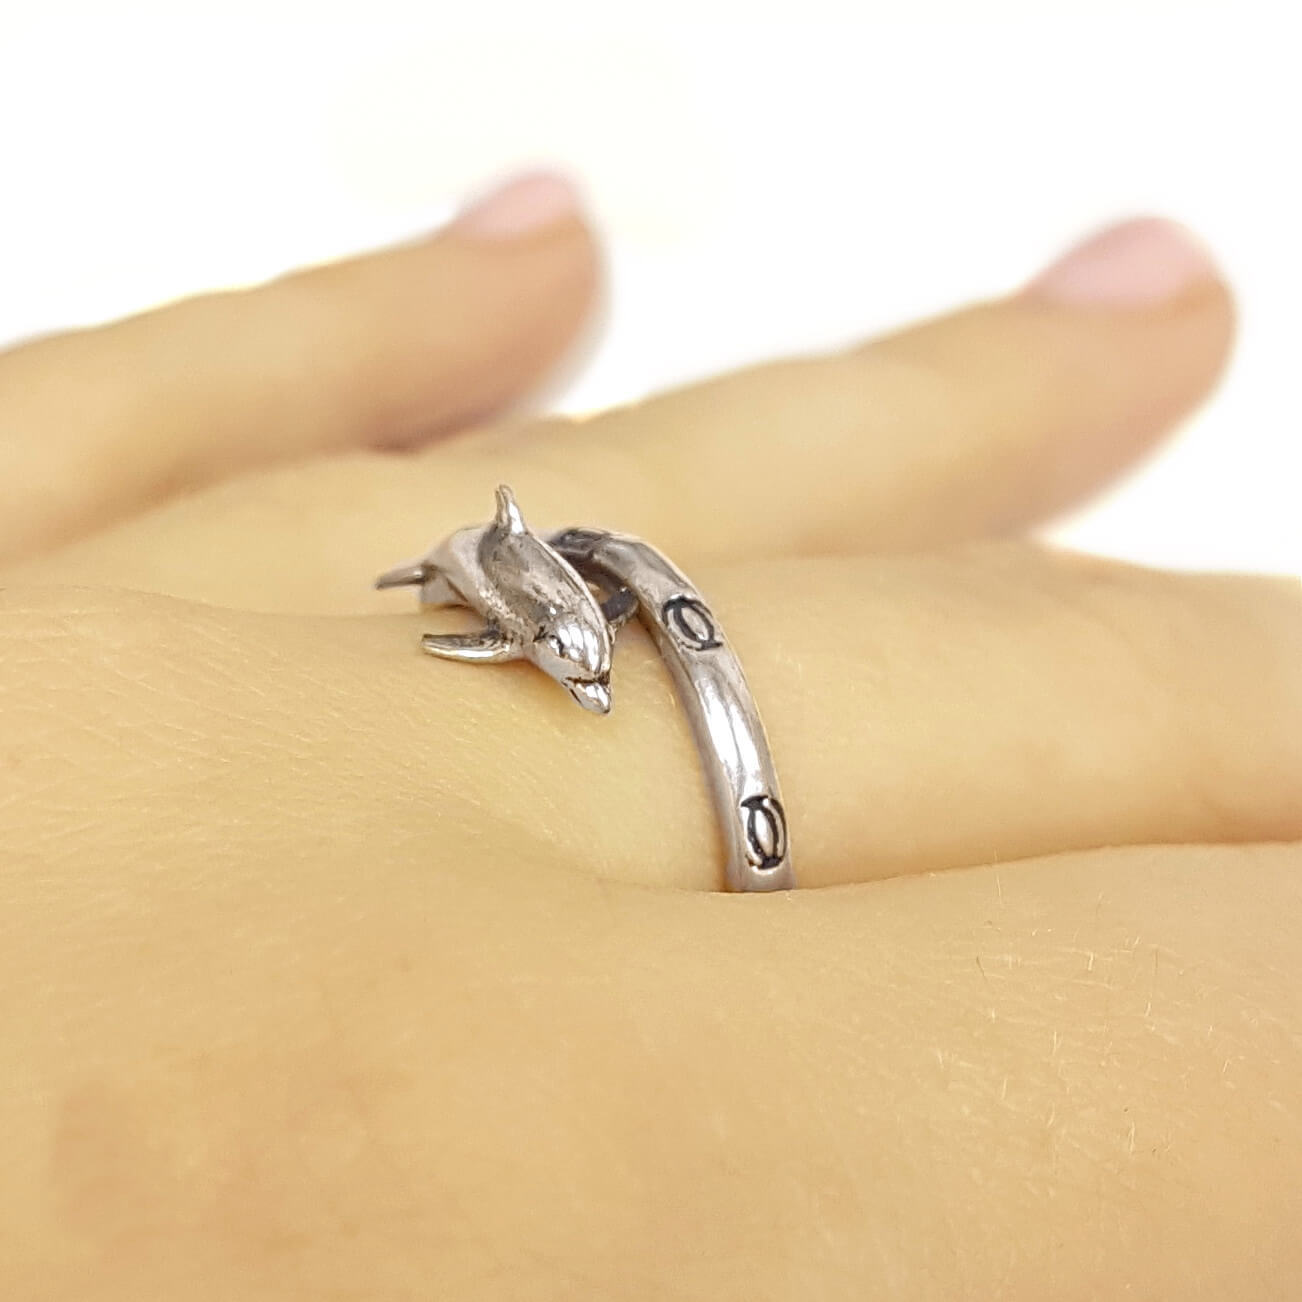 Dolphin Totem Ring, sterling silver